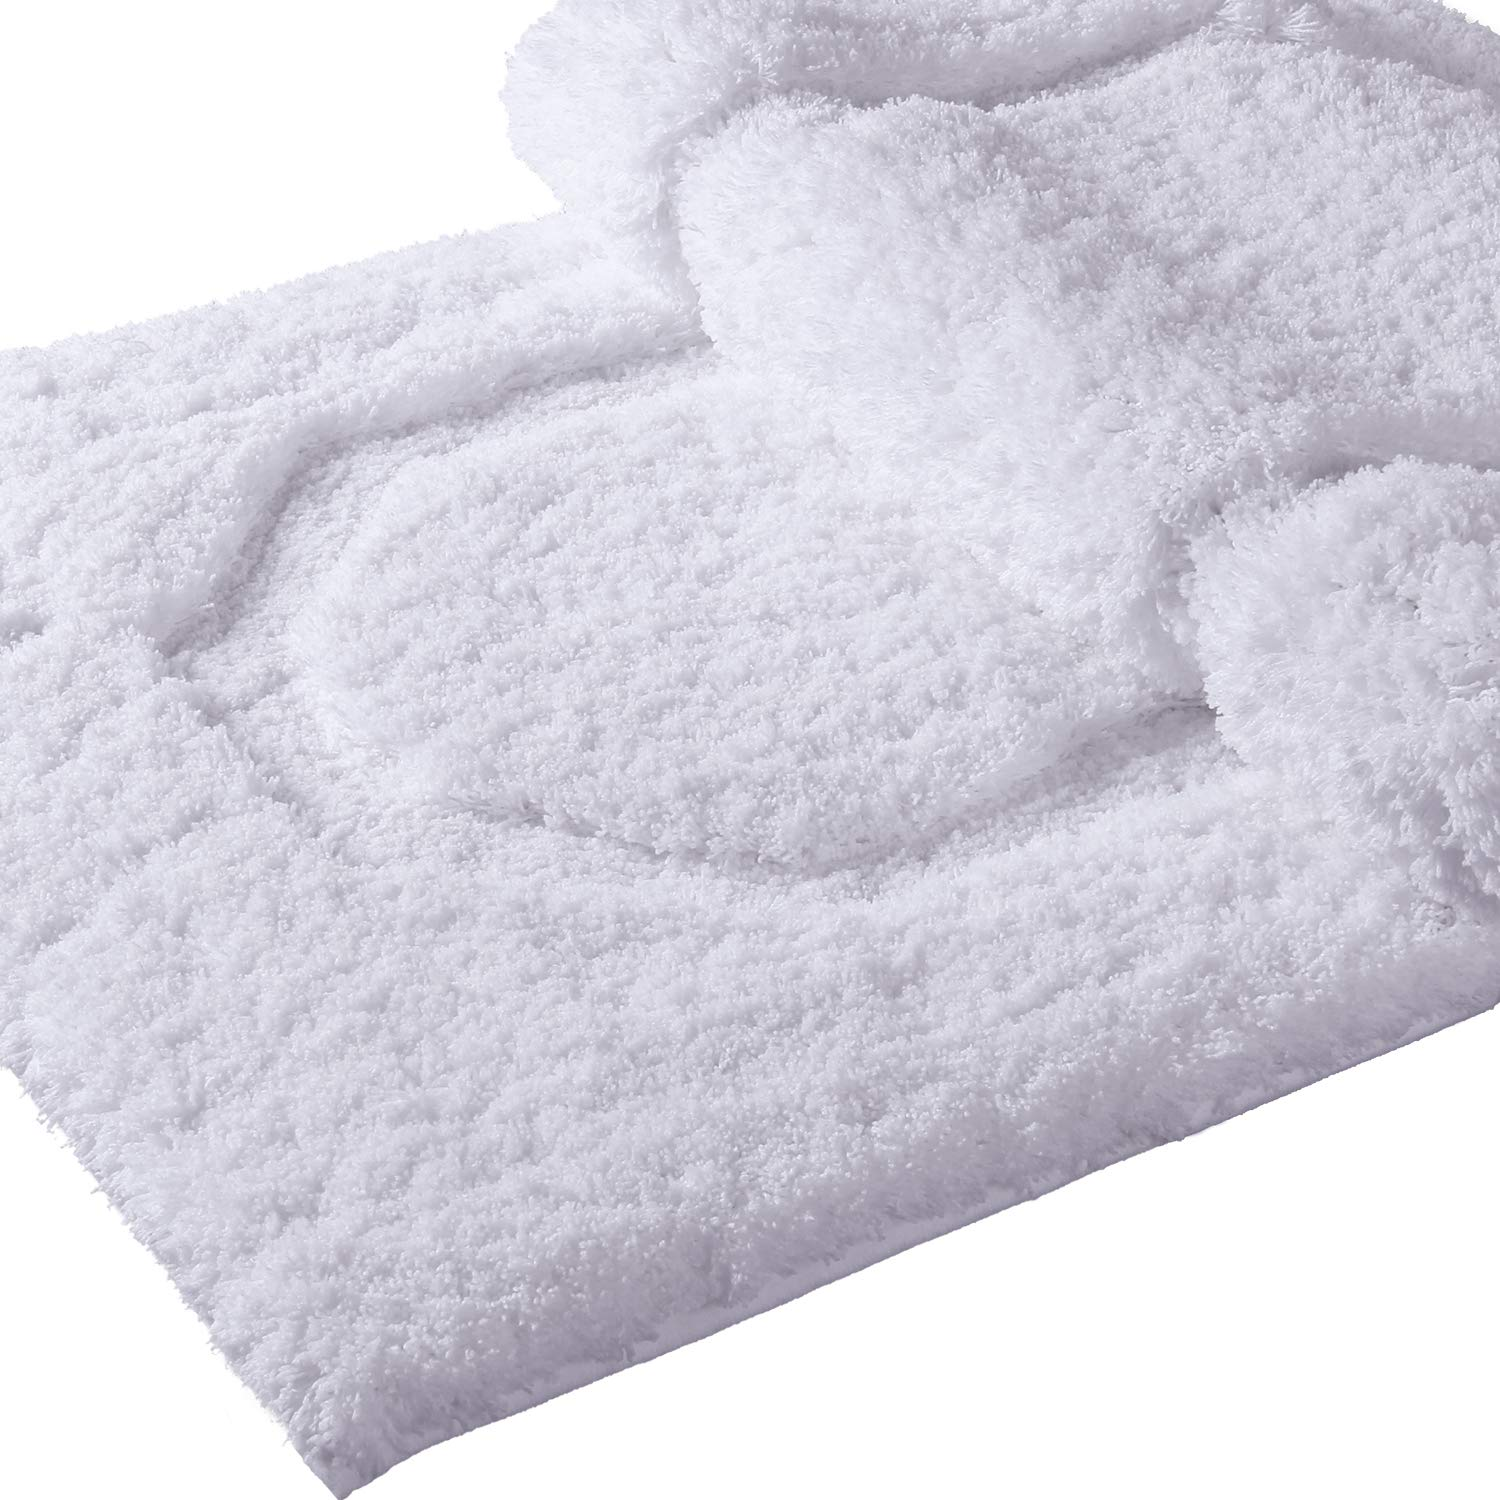 Lifewit Bath Mat White Bathroom Rug Soft Shag Water Absorbent with Non-Slip Rubber, 20 x 32 20 x 32 LF233355WH